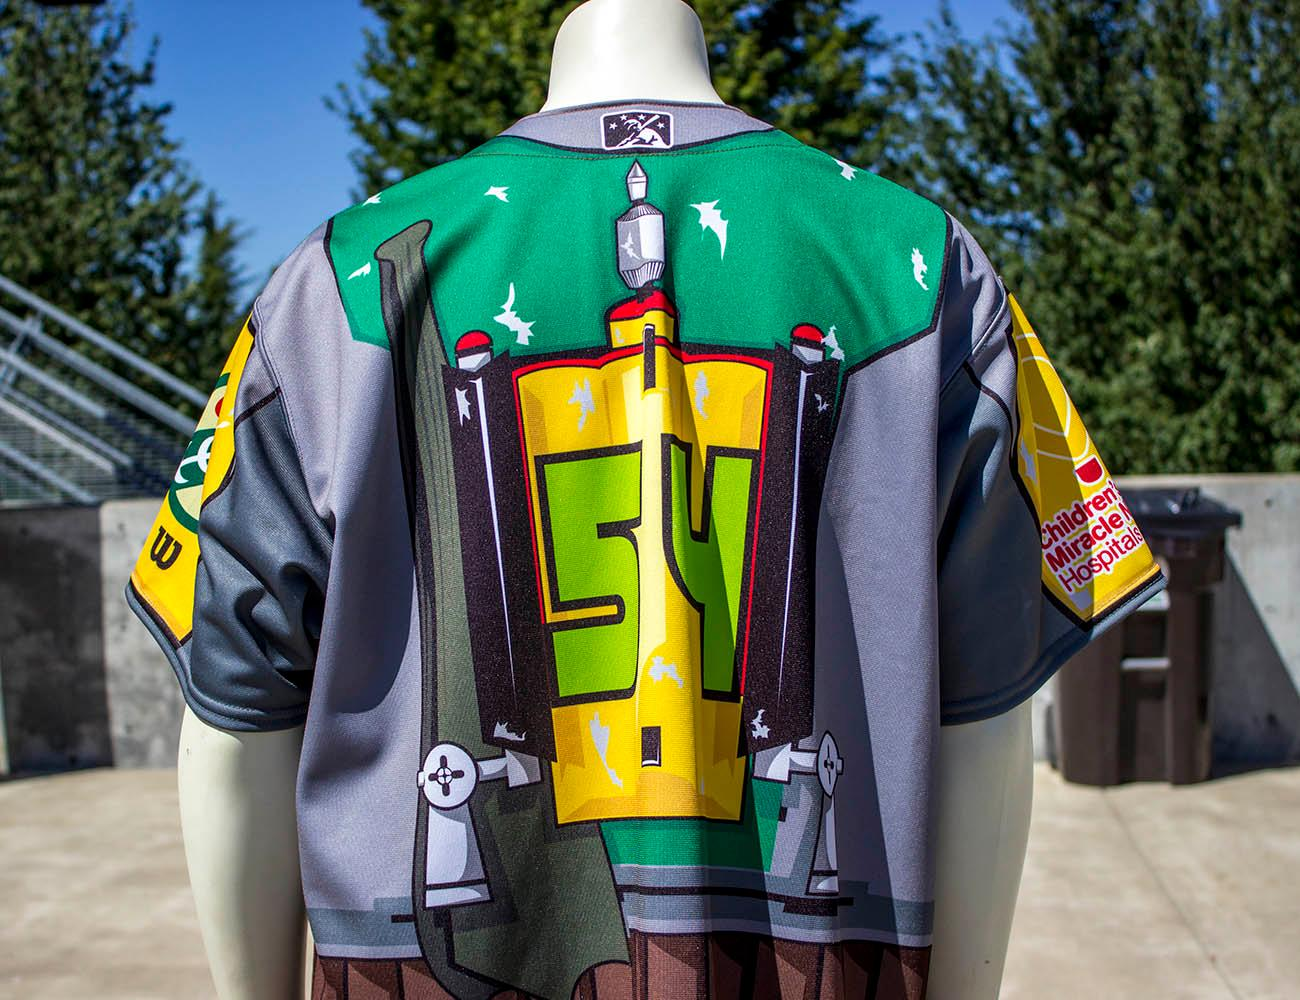 Eugene Emeralds graphic designer Danny Cowley says one of his favorite jerseys to make was for Star Wars night. He designed the jersey to look like Boba Fett's armor. The Eugene Emeralds will hold a Throwback Thursday and Teacher Appreciation Night August 18. Teachers can get free box seats. (Photo by Amanda Butt)